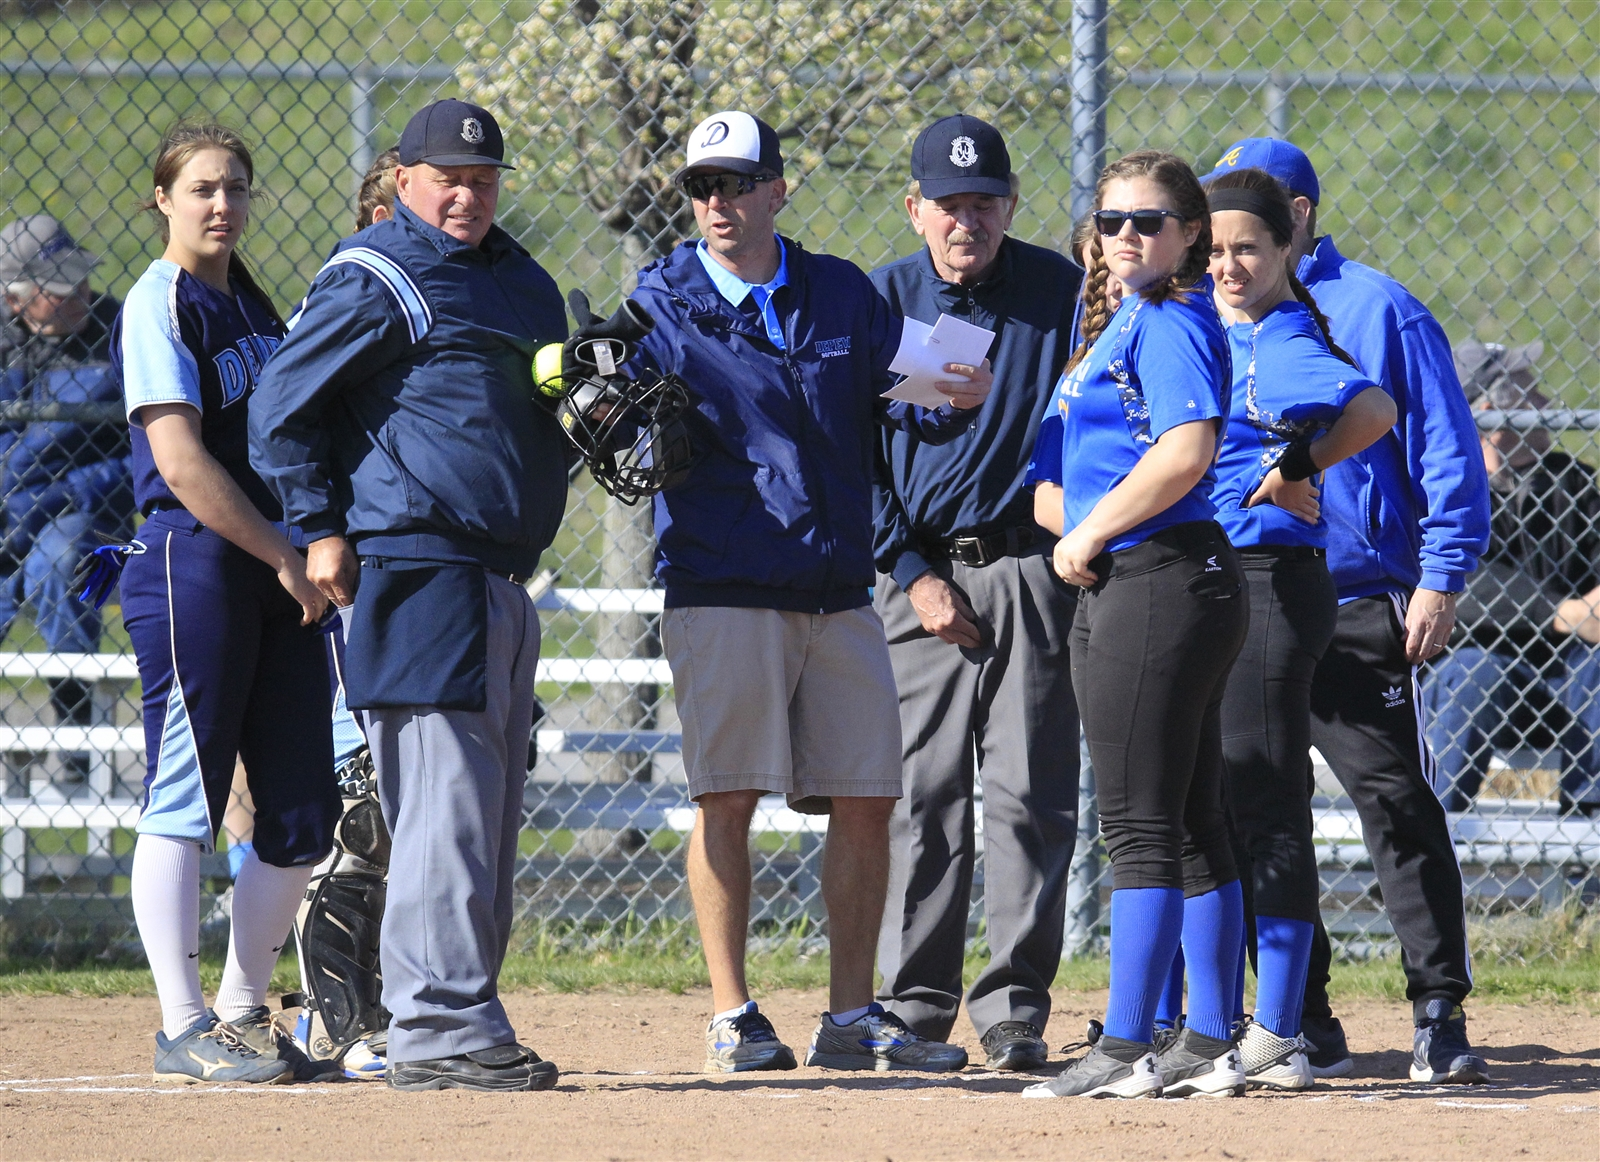 Umpires go over the ground rules with Depew and Alden prior to game action.